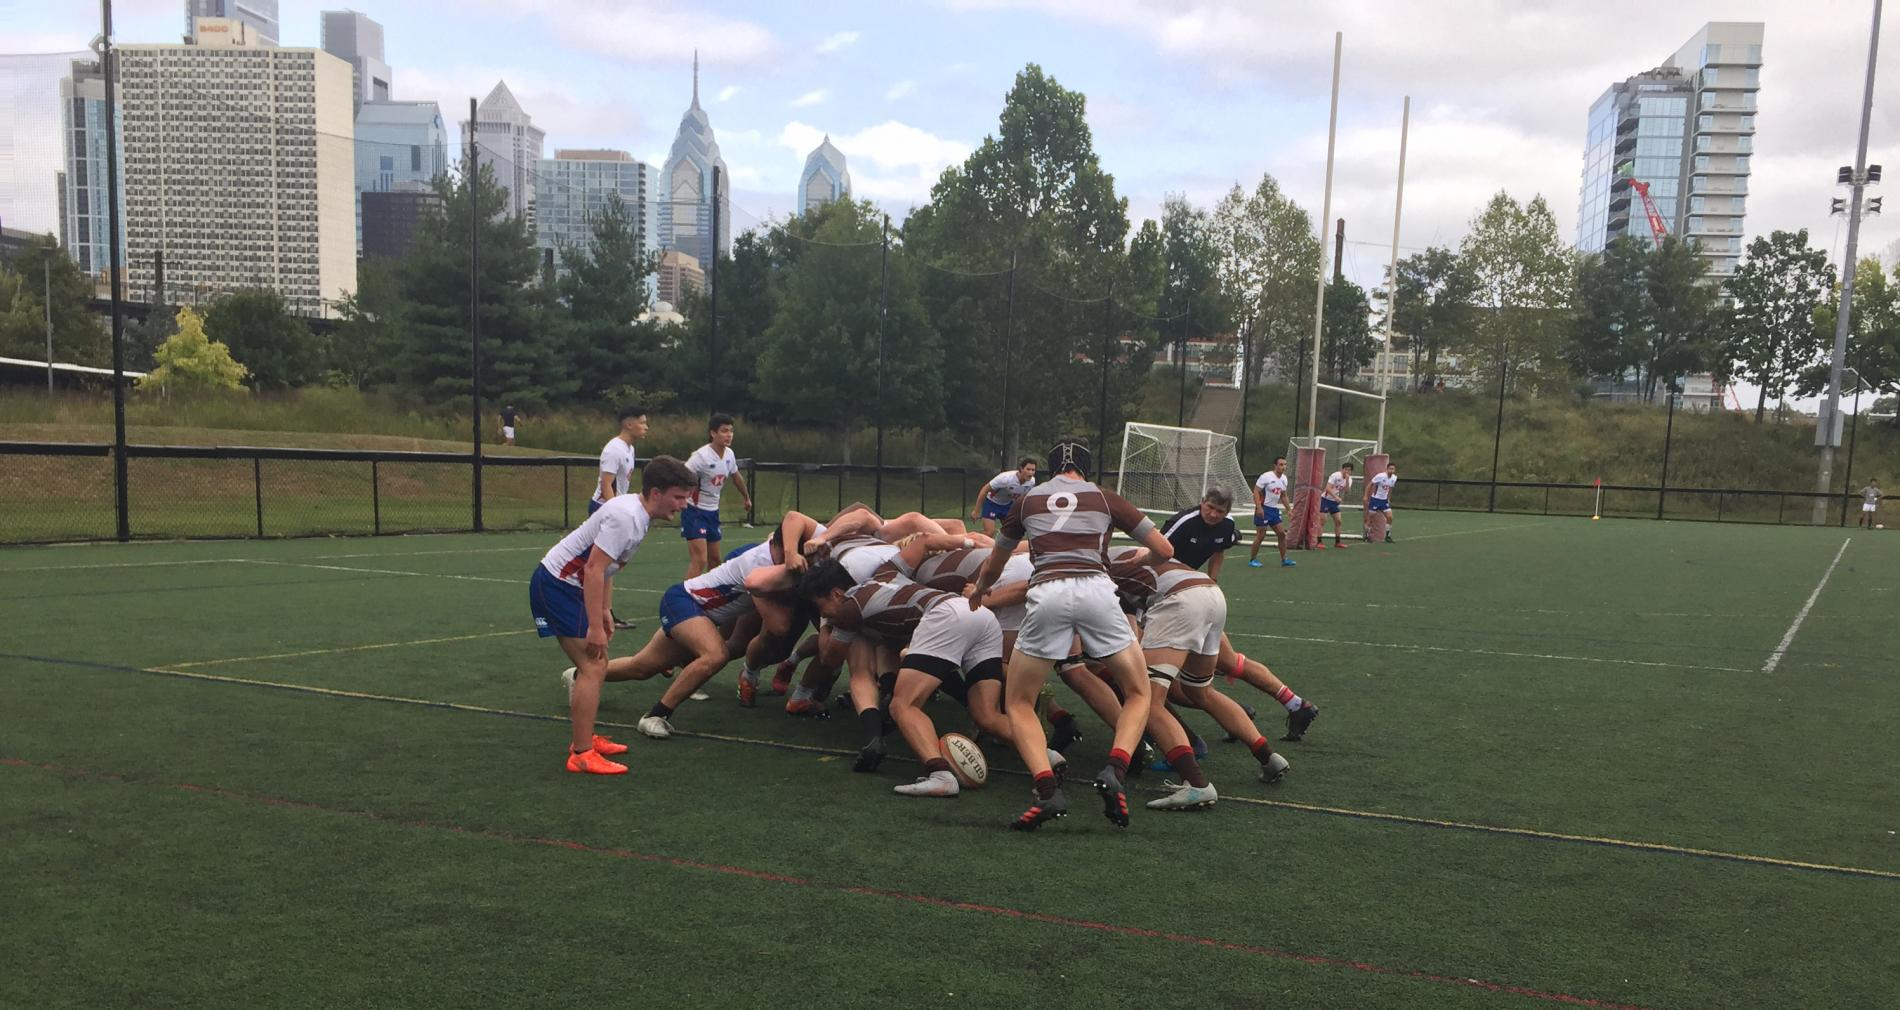 Rugby scrum Brown v Penn with the Philly skyline in the background